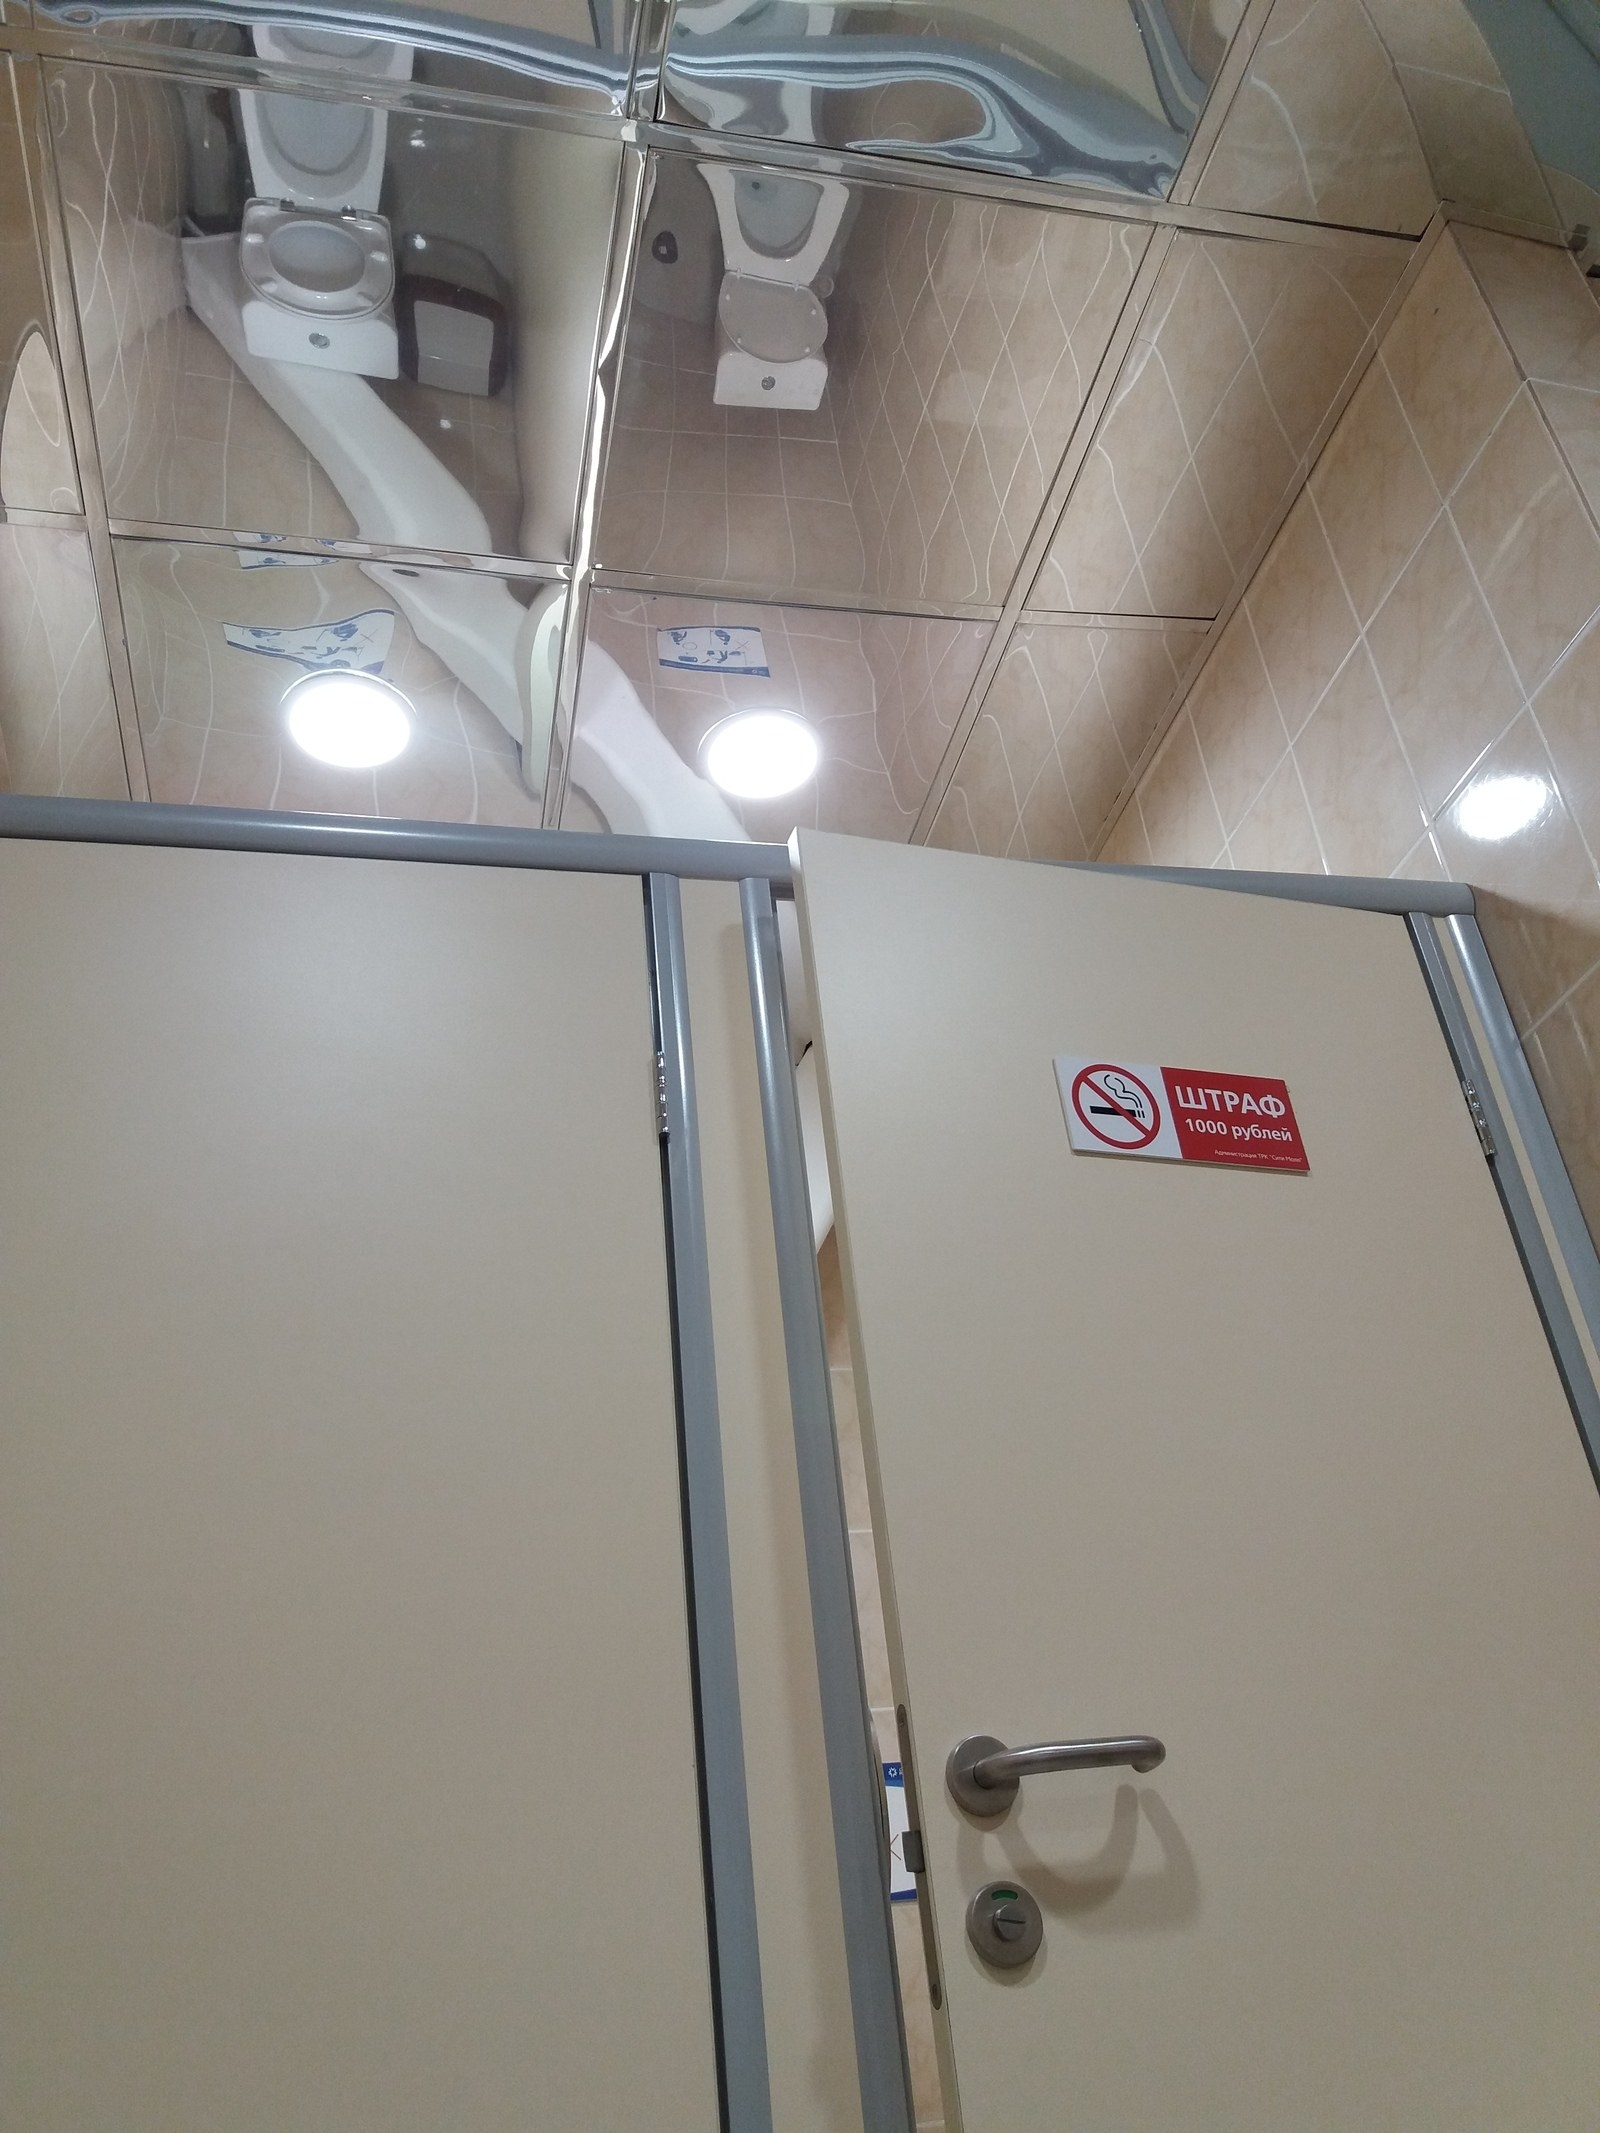 Can't see someone pooping through the door? No problem!